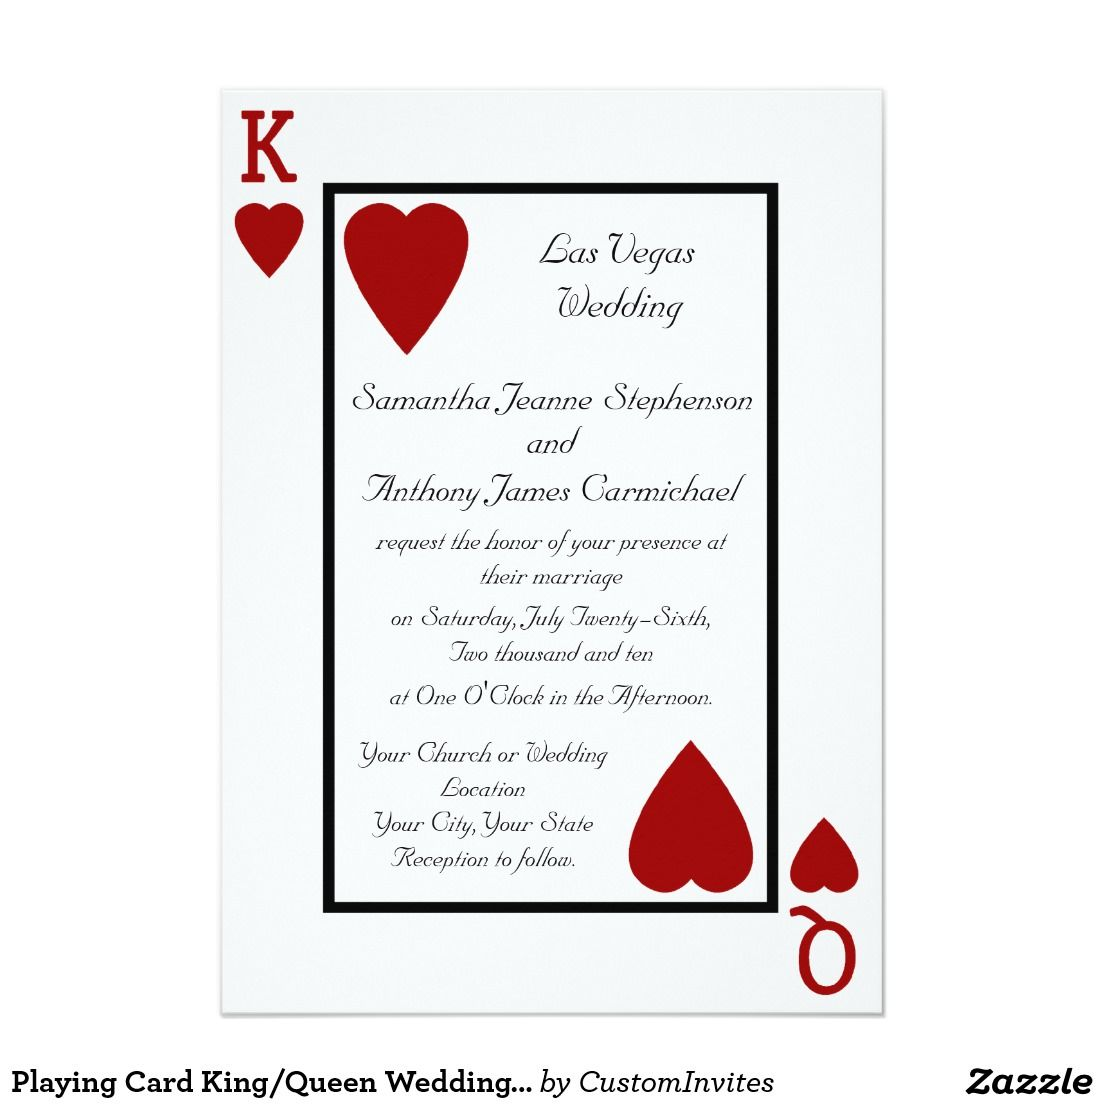 Playing Card King/Queen Wedding Invitations | King queen, Playing ...